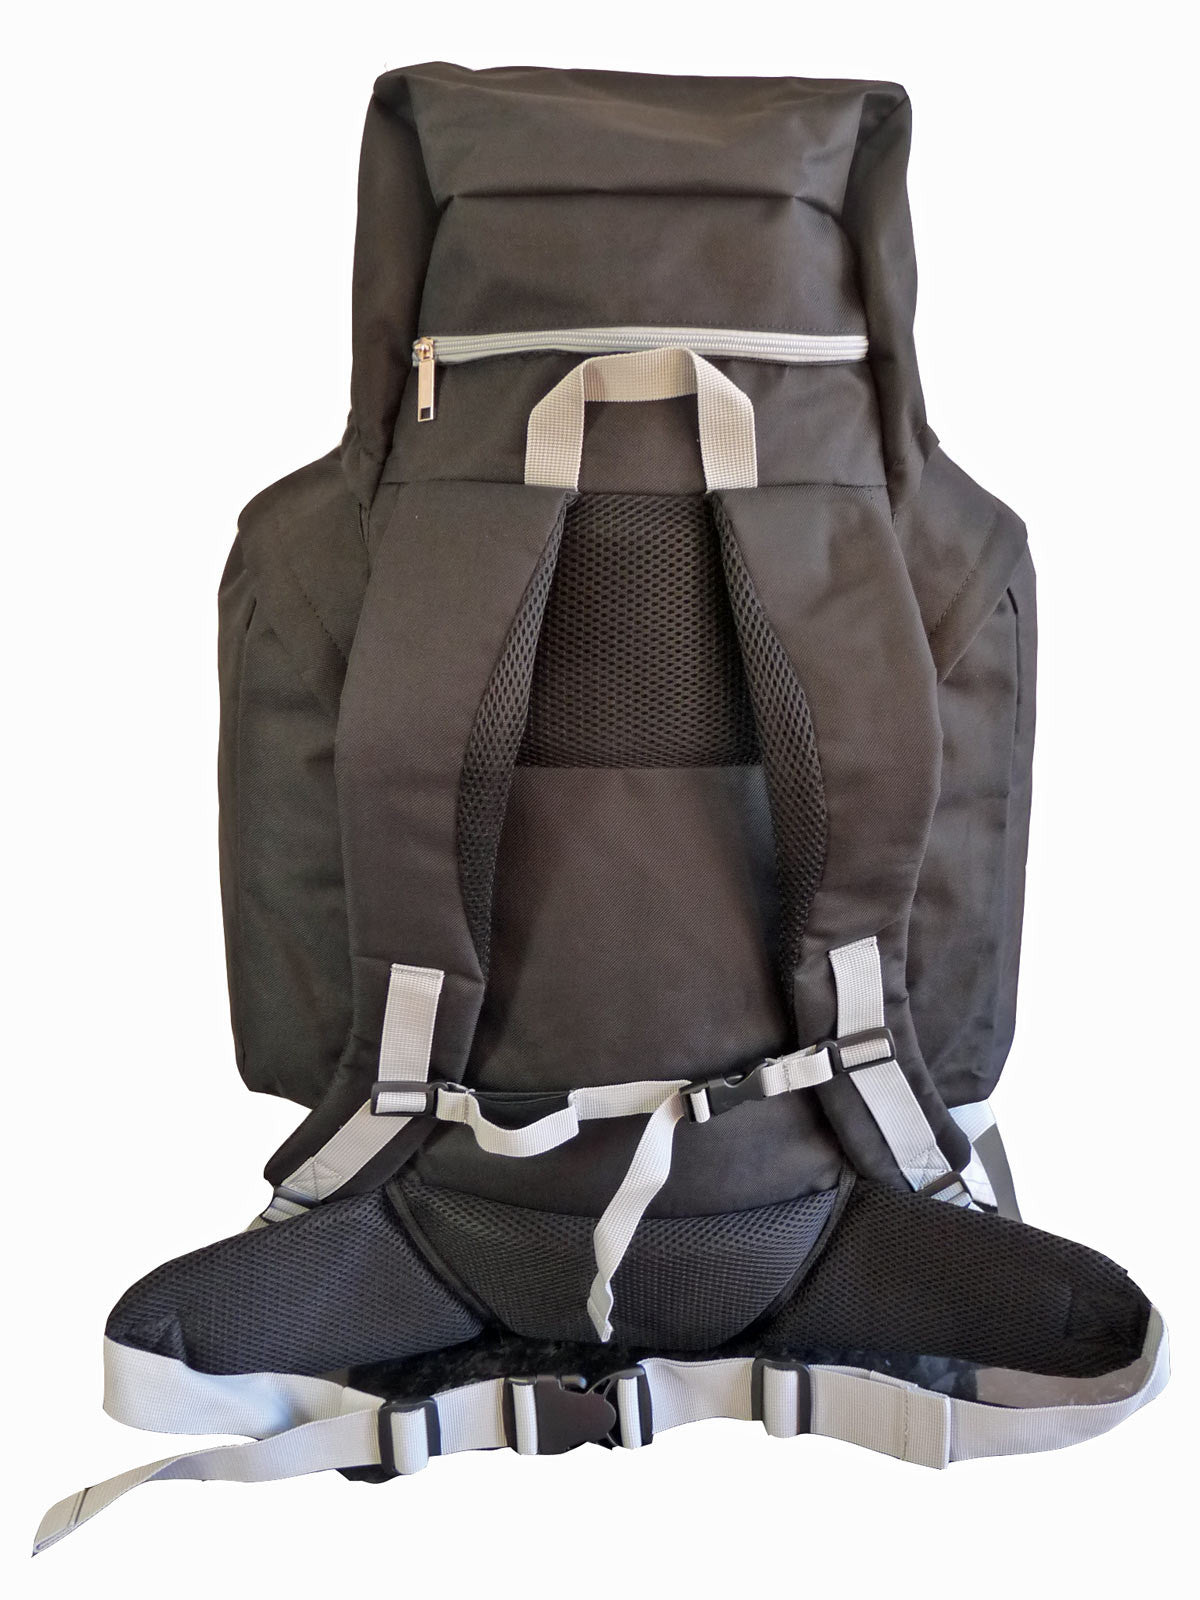 80 100 125 litre backpack black rear view